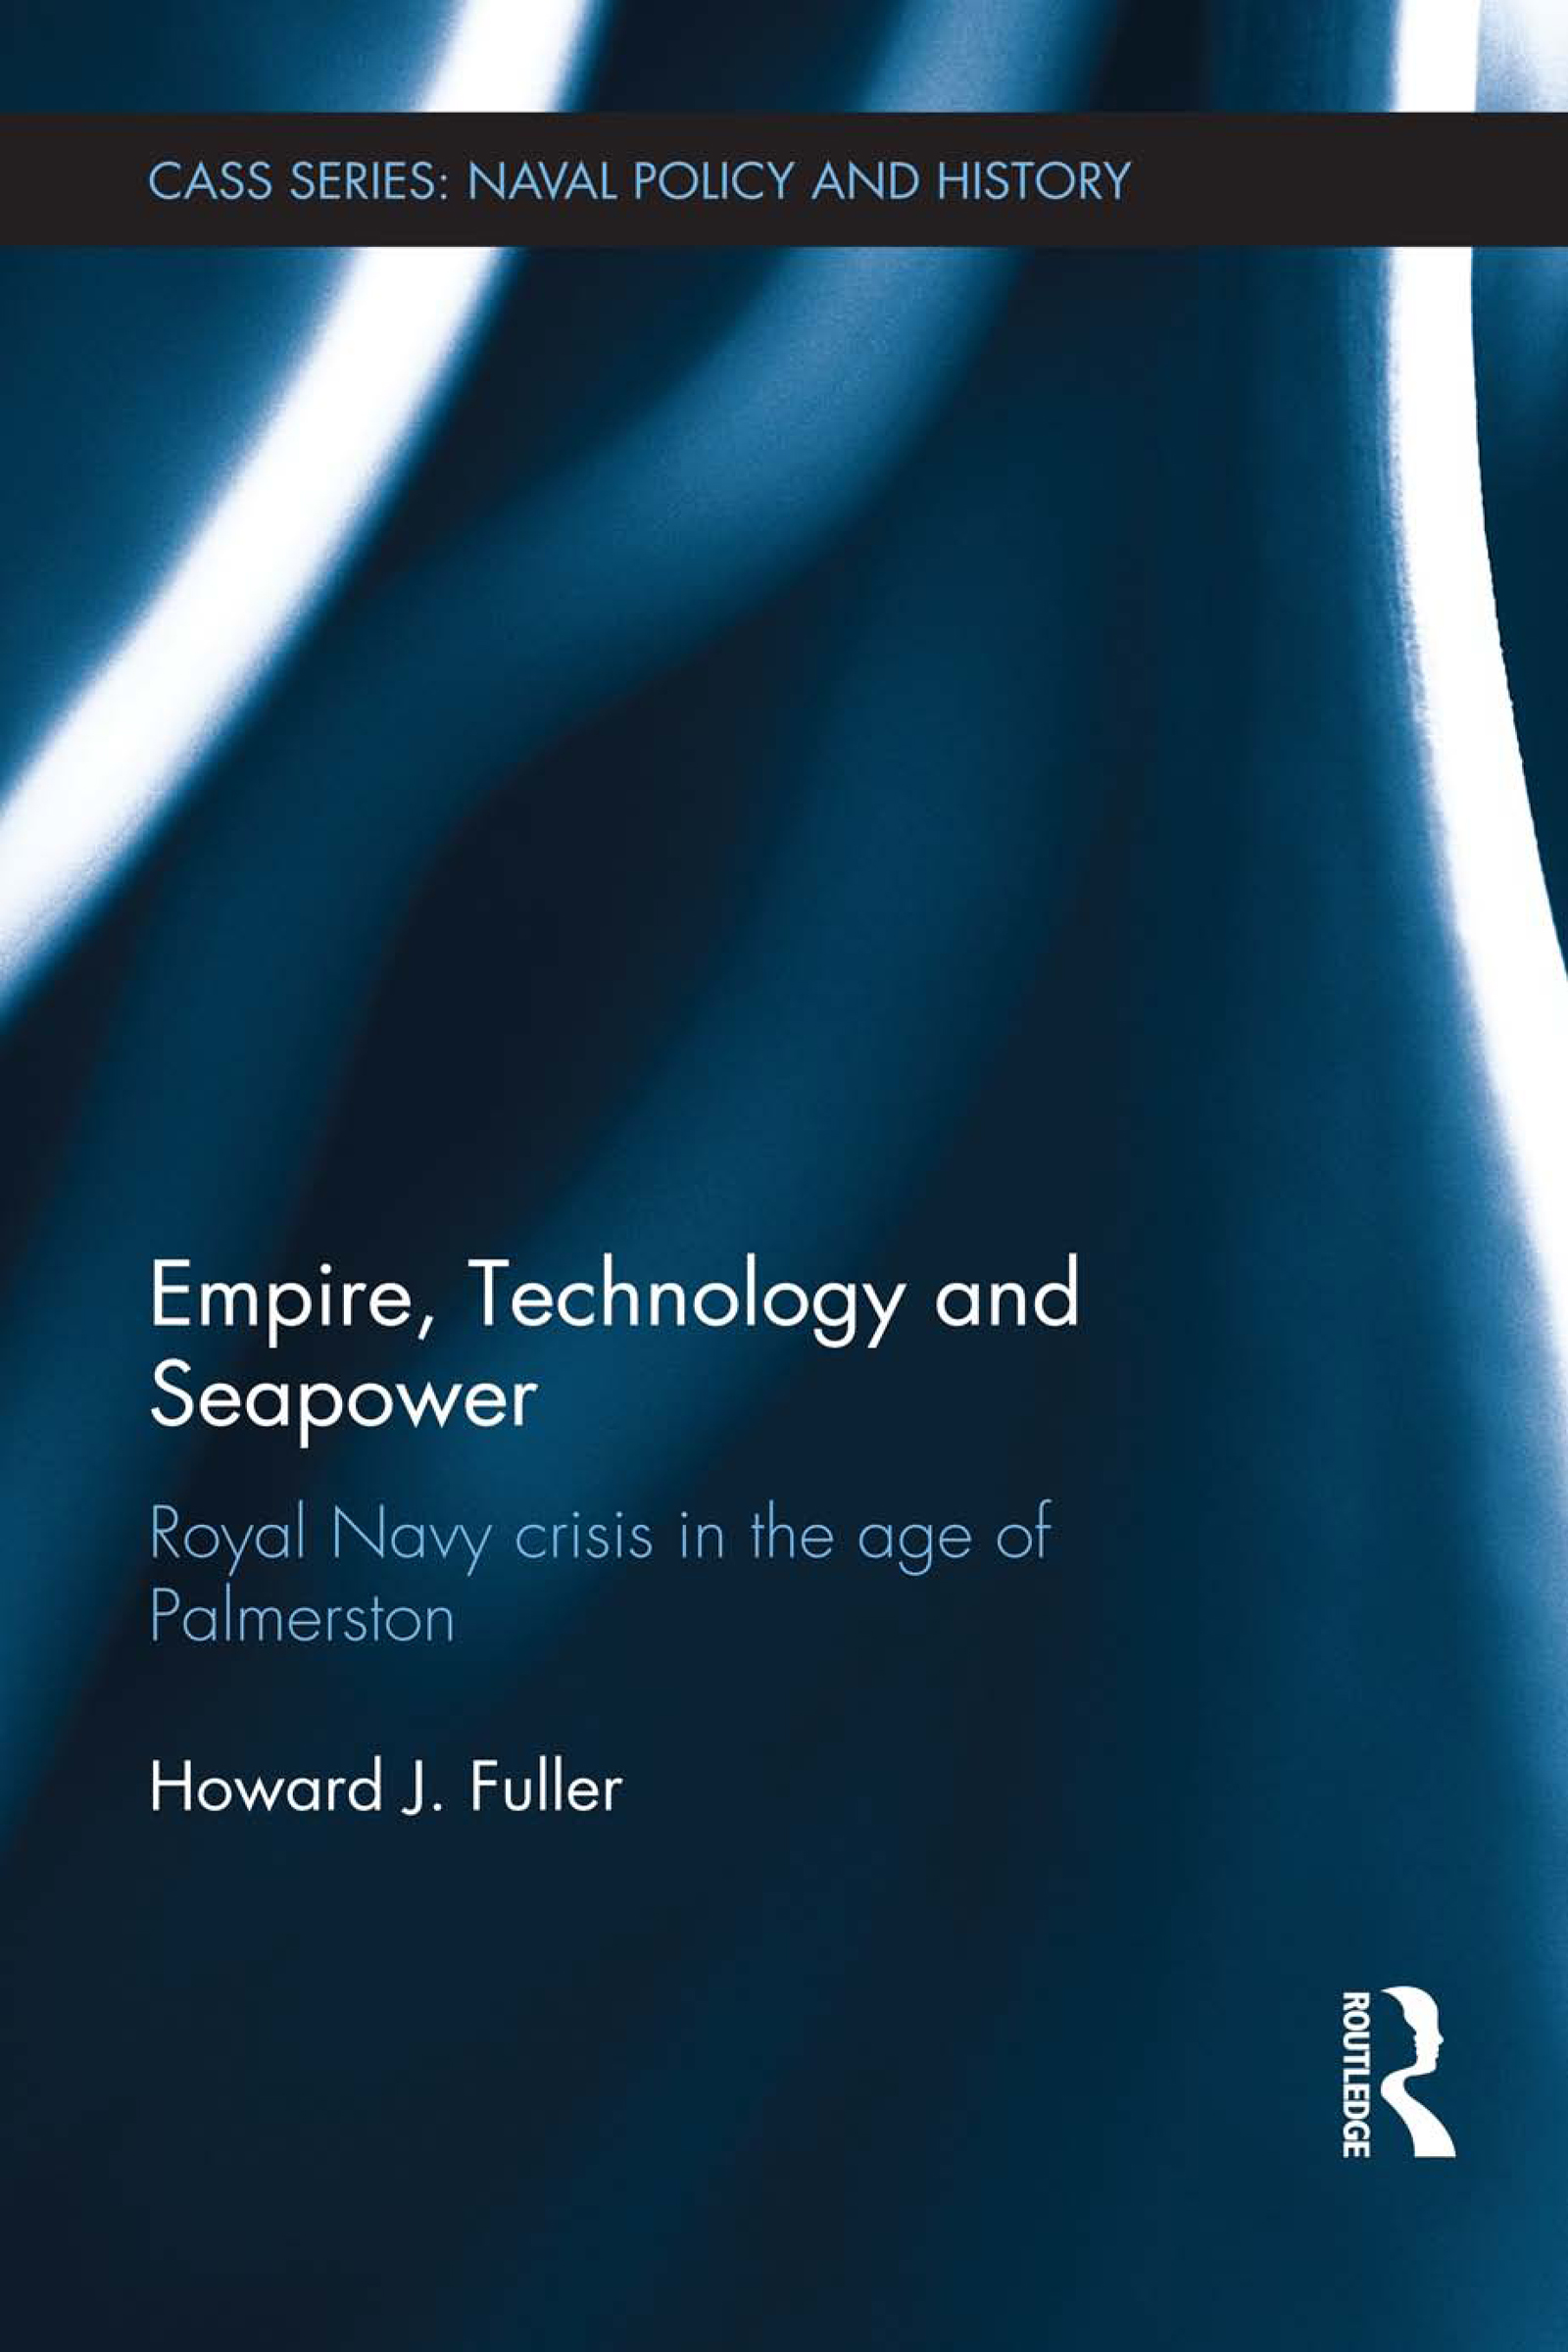 Empire, Technology and Seapower